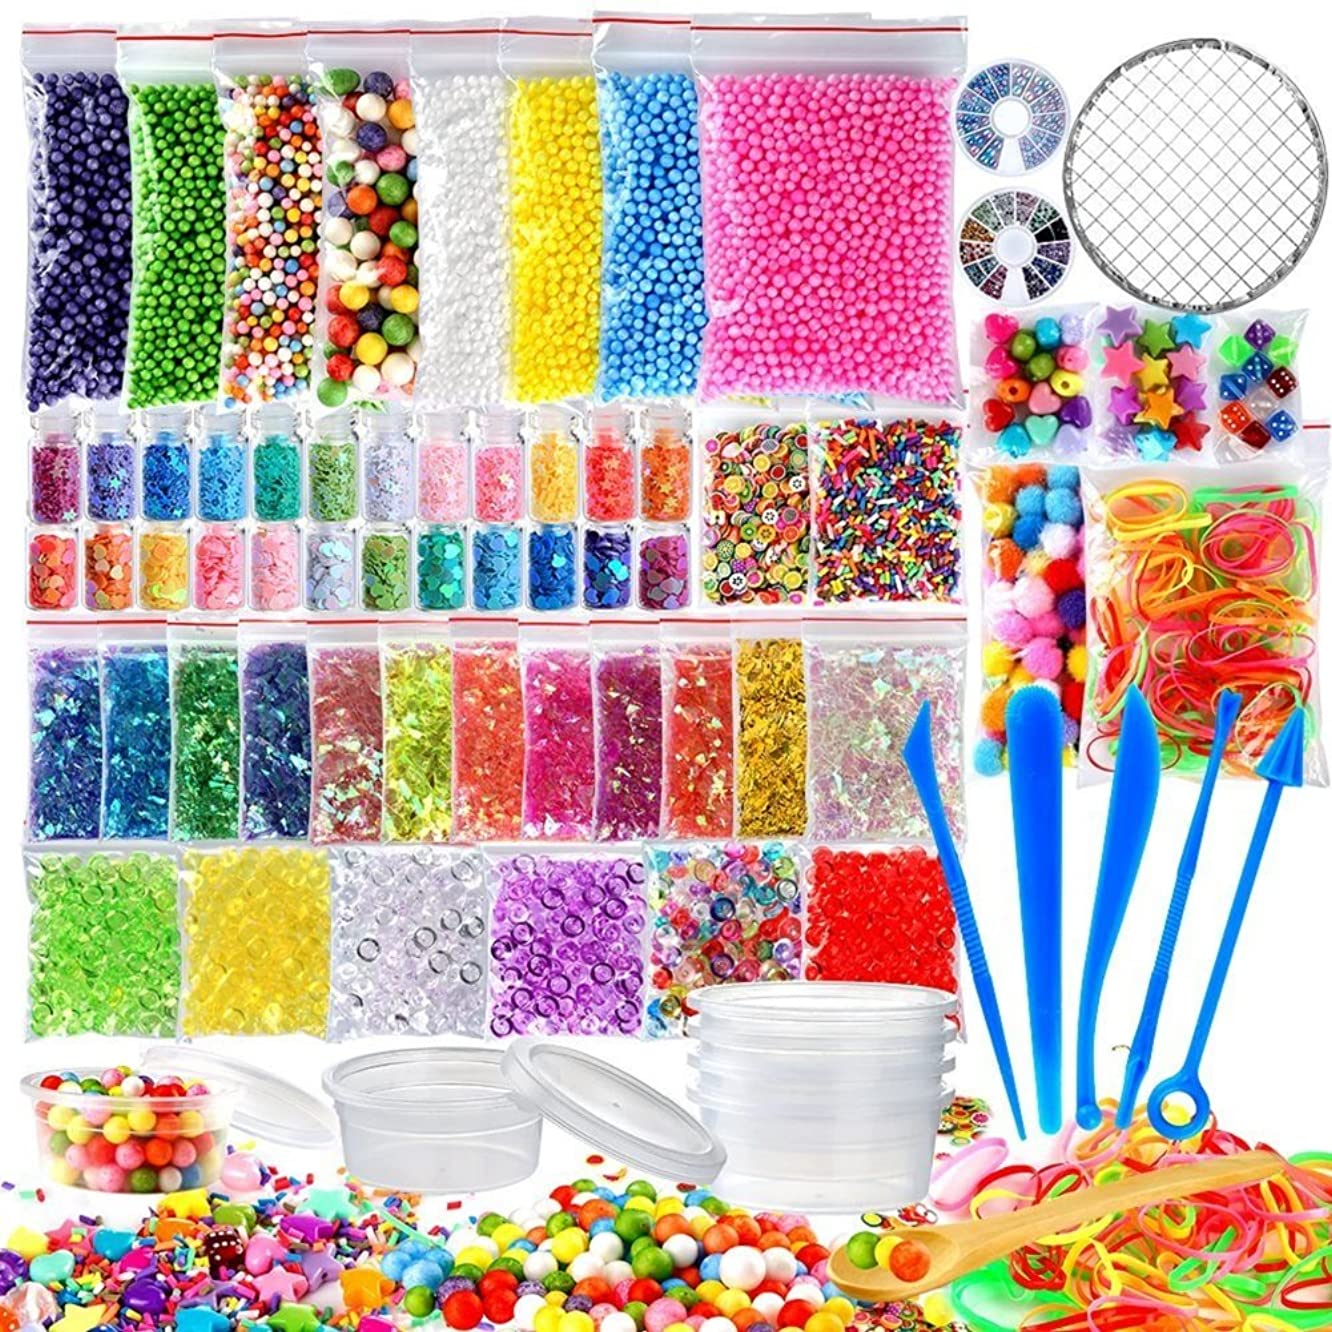 72 Pack Slime Supplies Kit Include Foam Balls, Fishbowl Beads, Net, Glitter Jars, Pearls, Sugar Paper, Storage Containers, Slime Tools Slime Beads Charms for DIY Slime Making Art Craft Party Decor